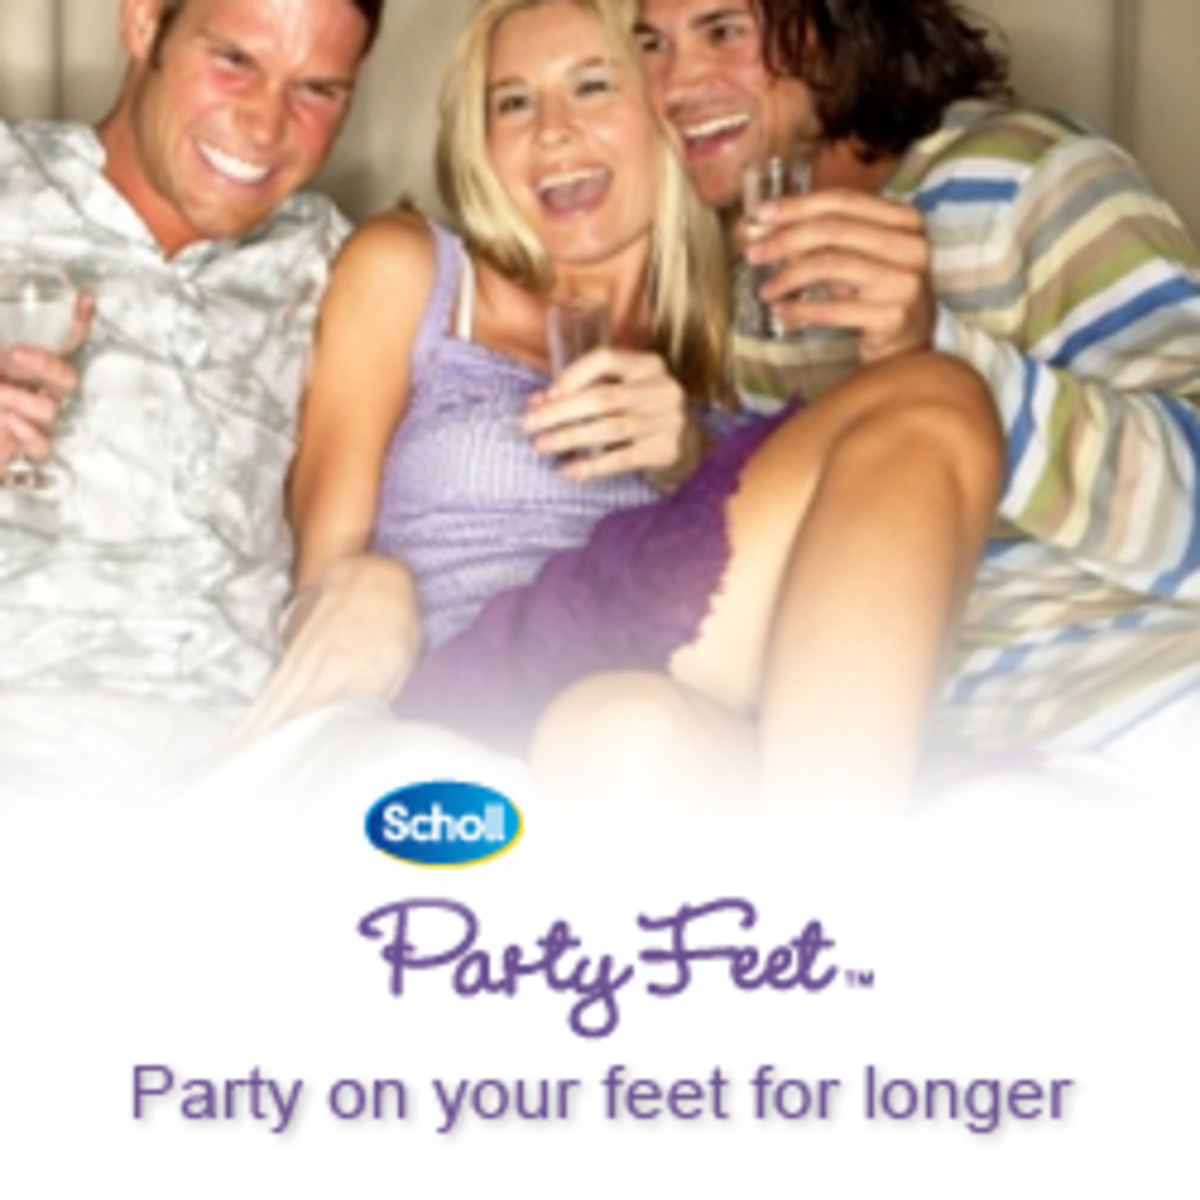 Dr. Scholl, the party people